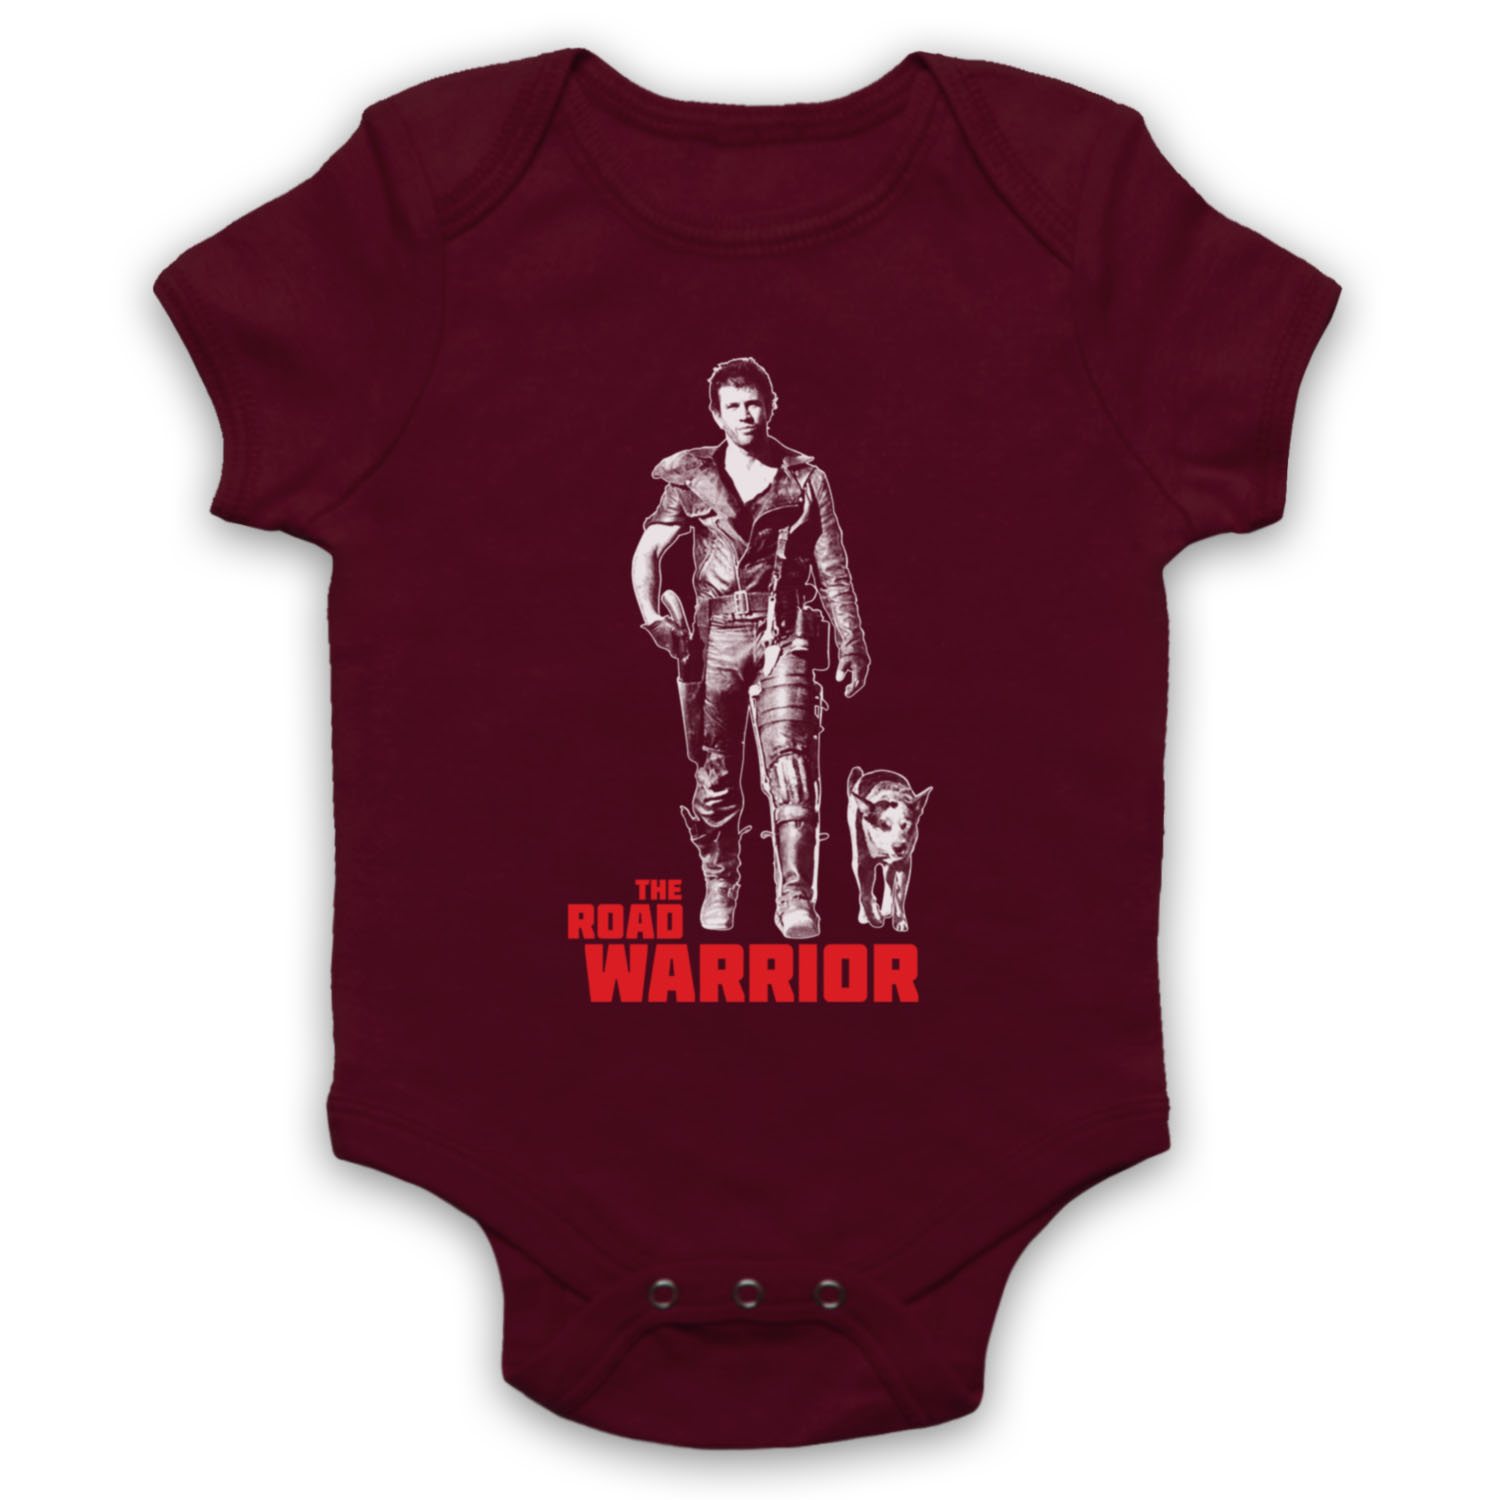 MAD MAX 2 Unofficial The Road Warrior Gibson Mel Film Baby Grow Babygrow Cadeau